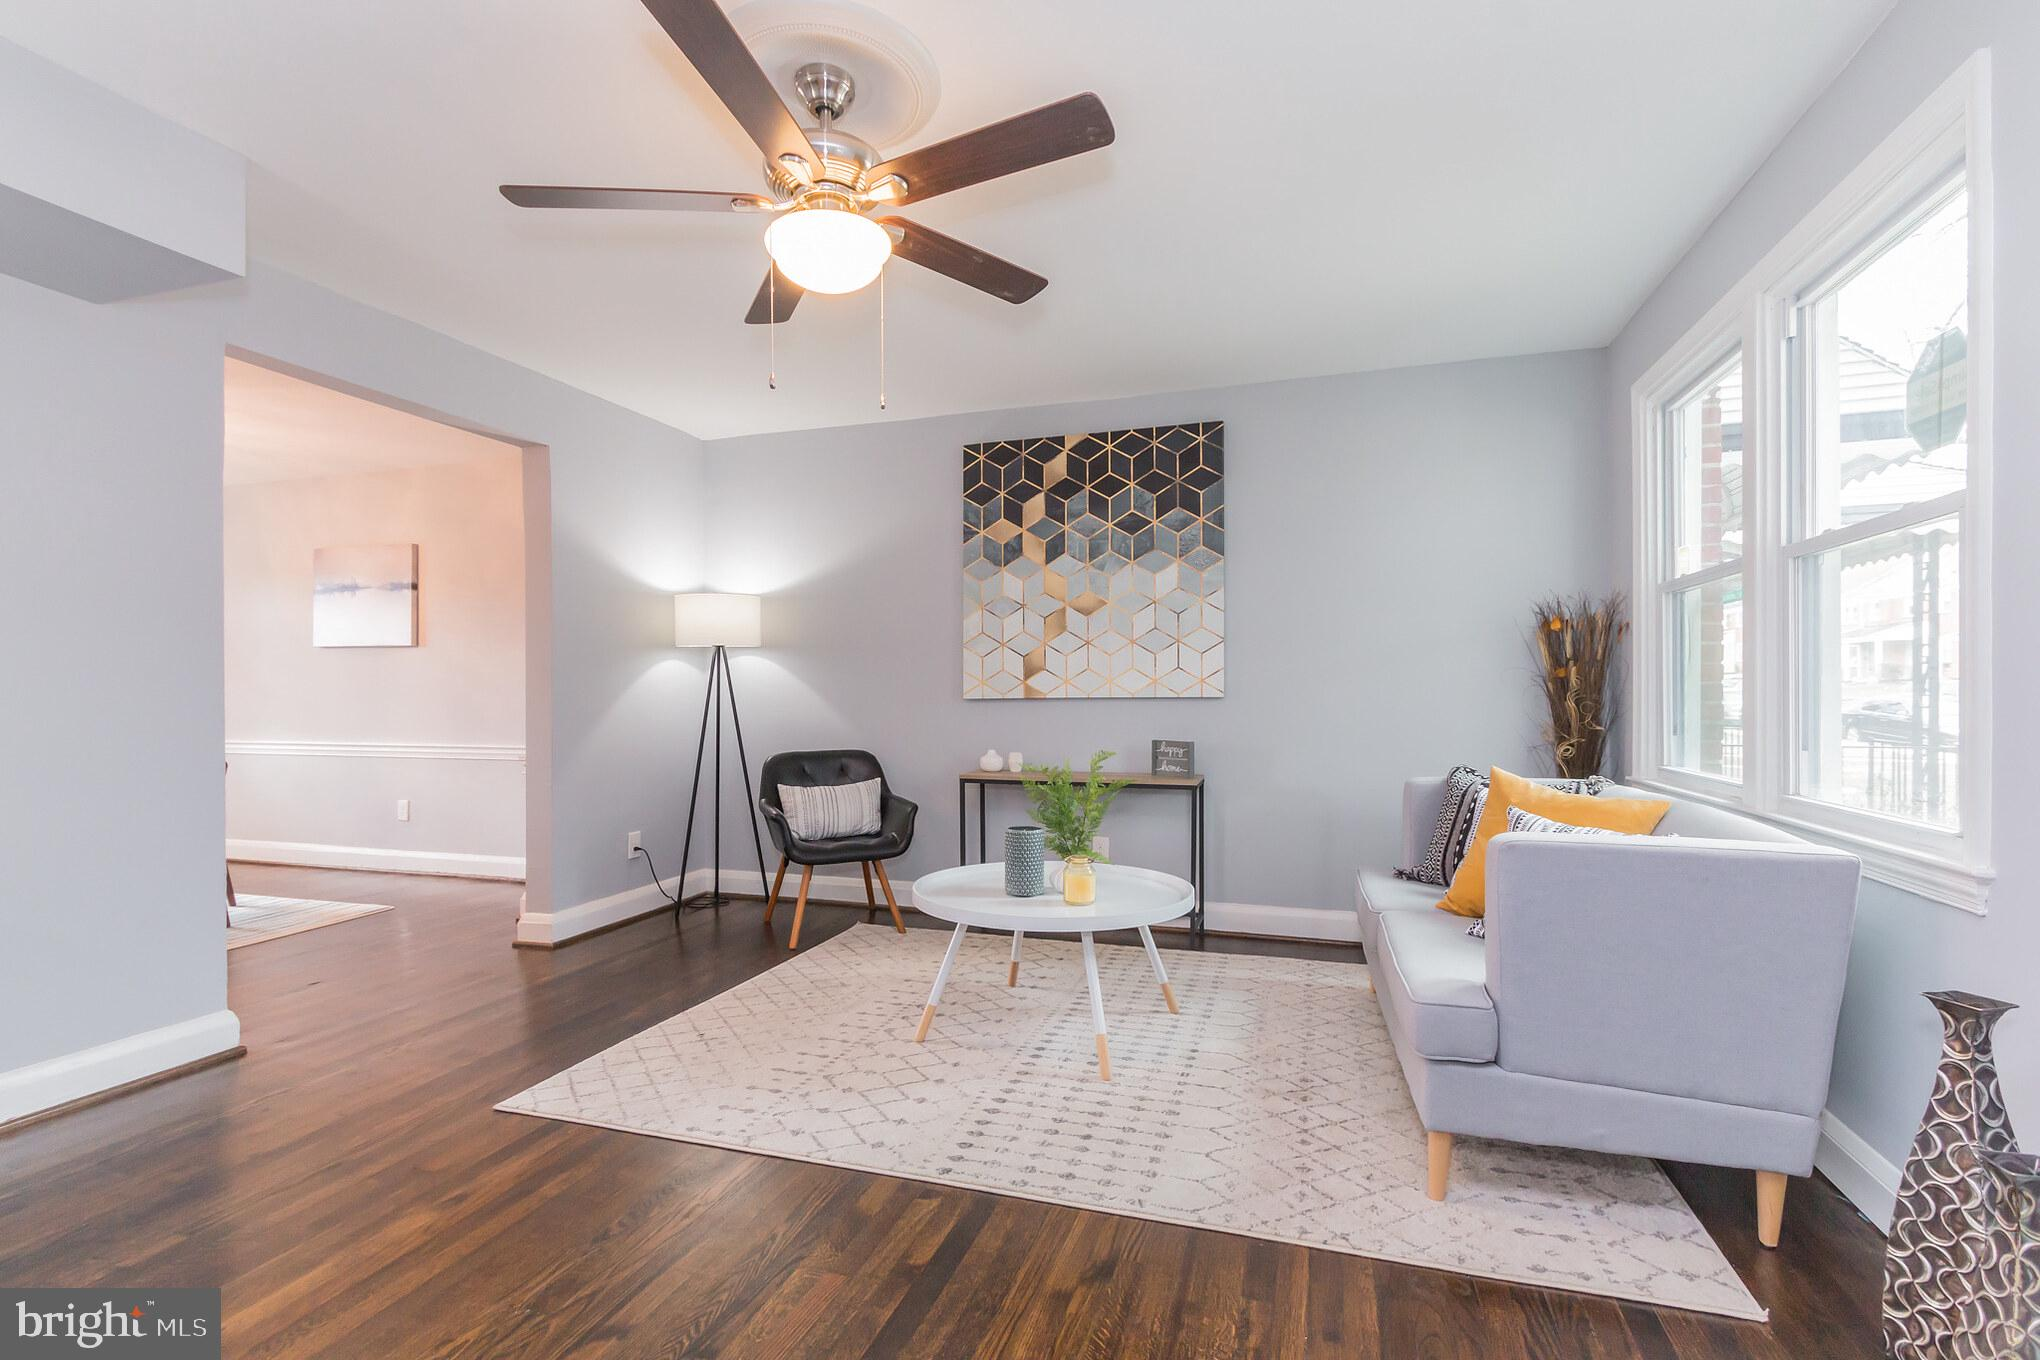 2013 SWANSEA ROAD, BALTIMORE, MD 21239